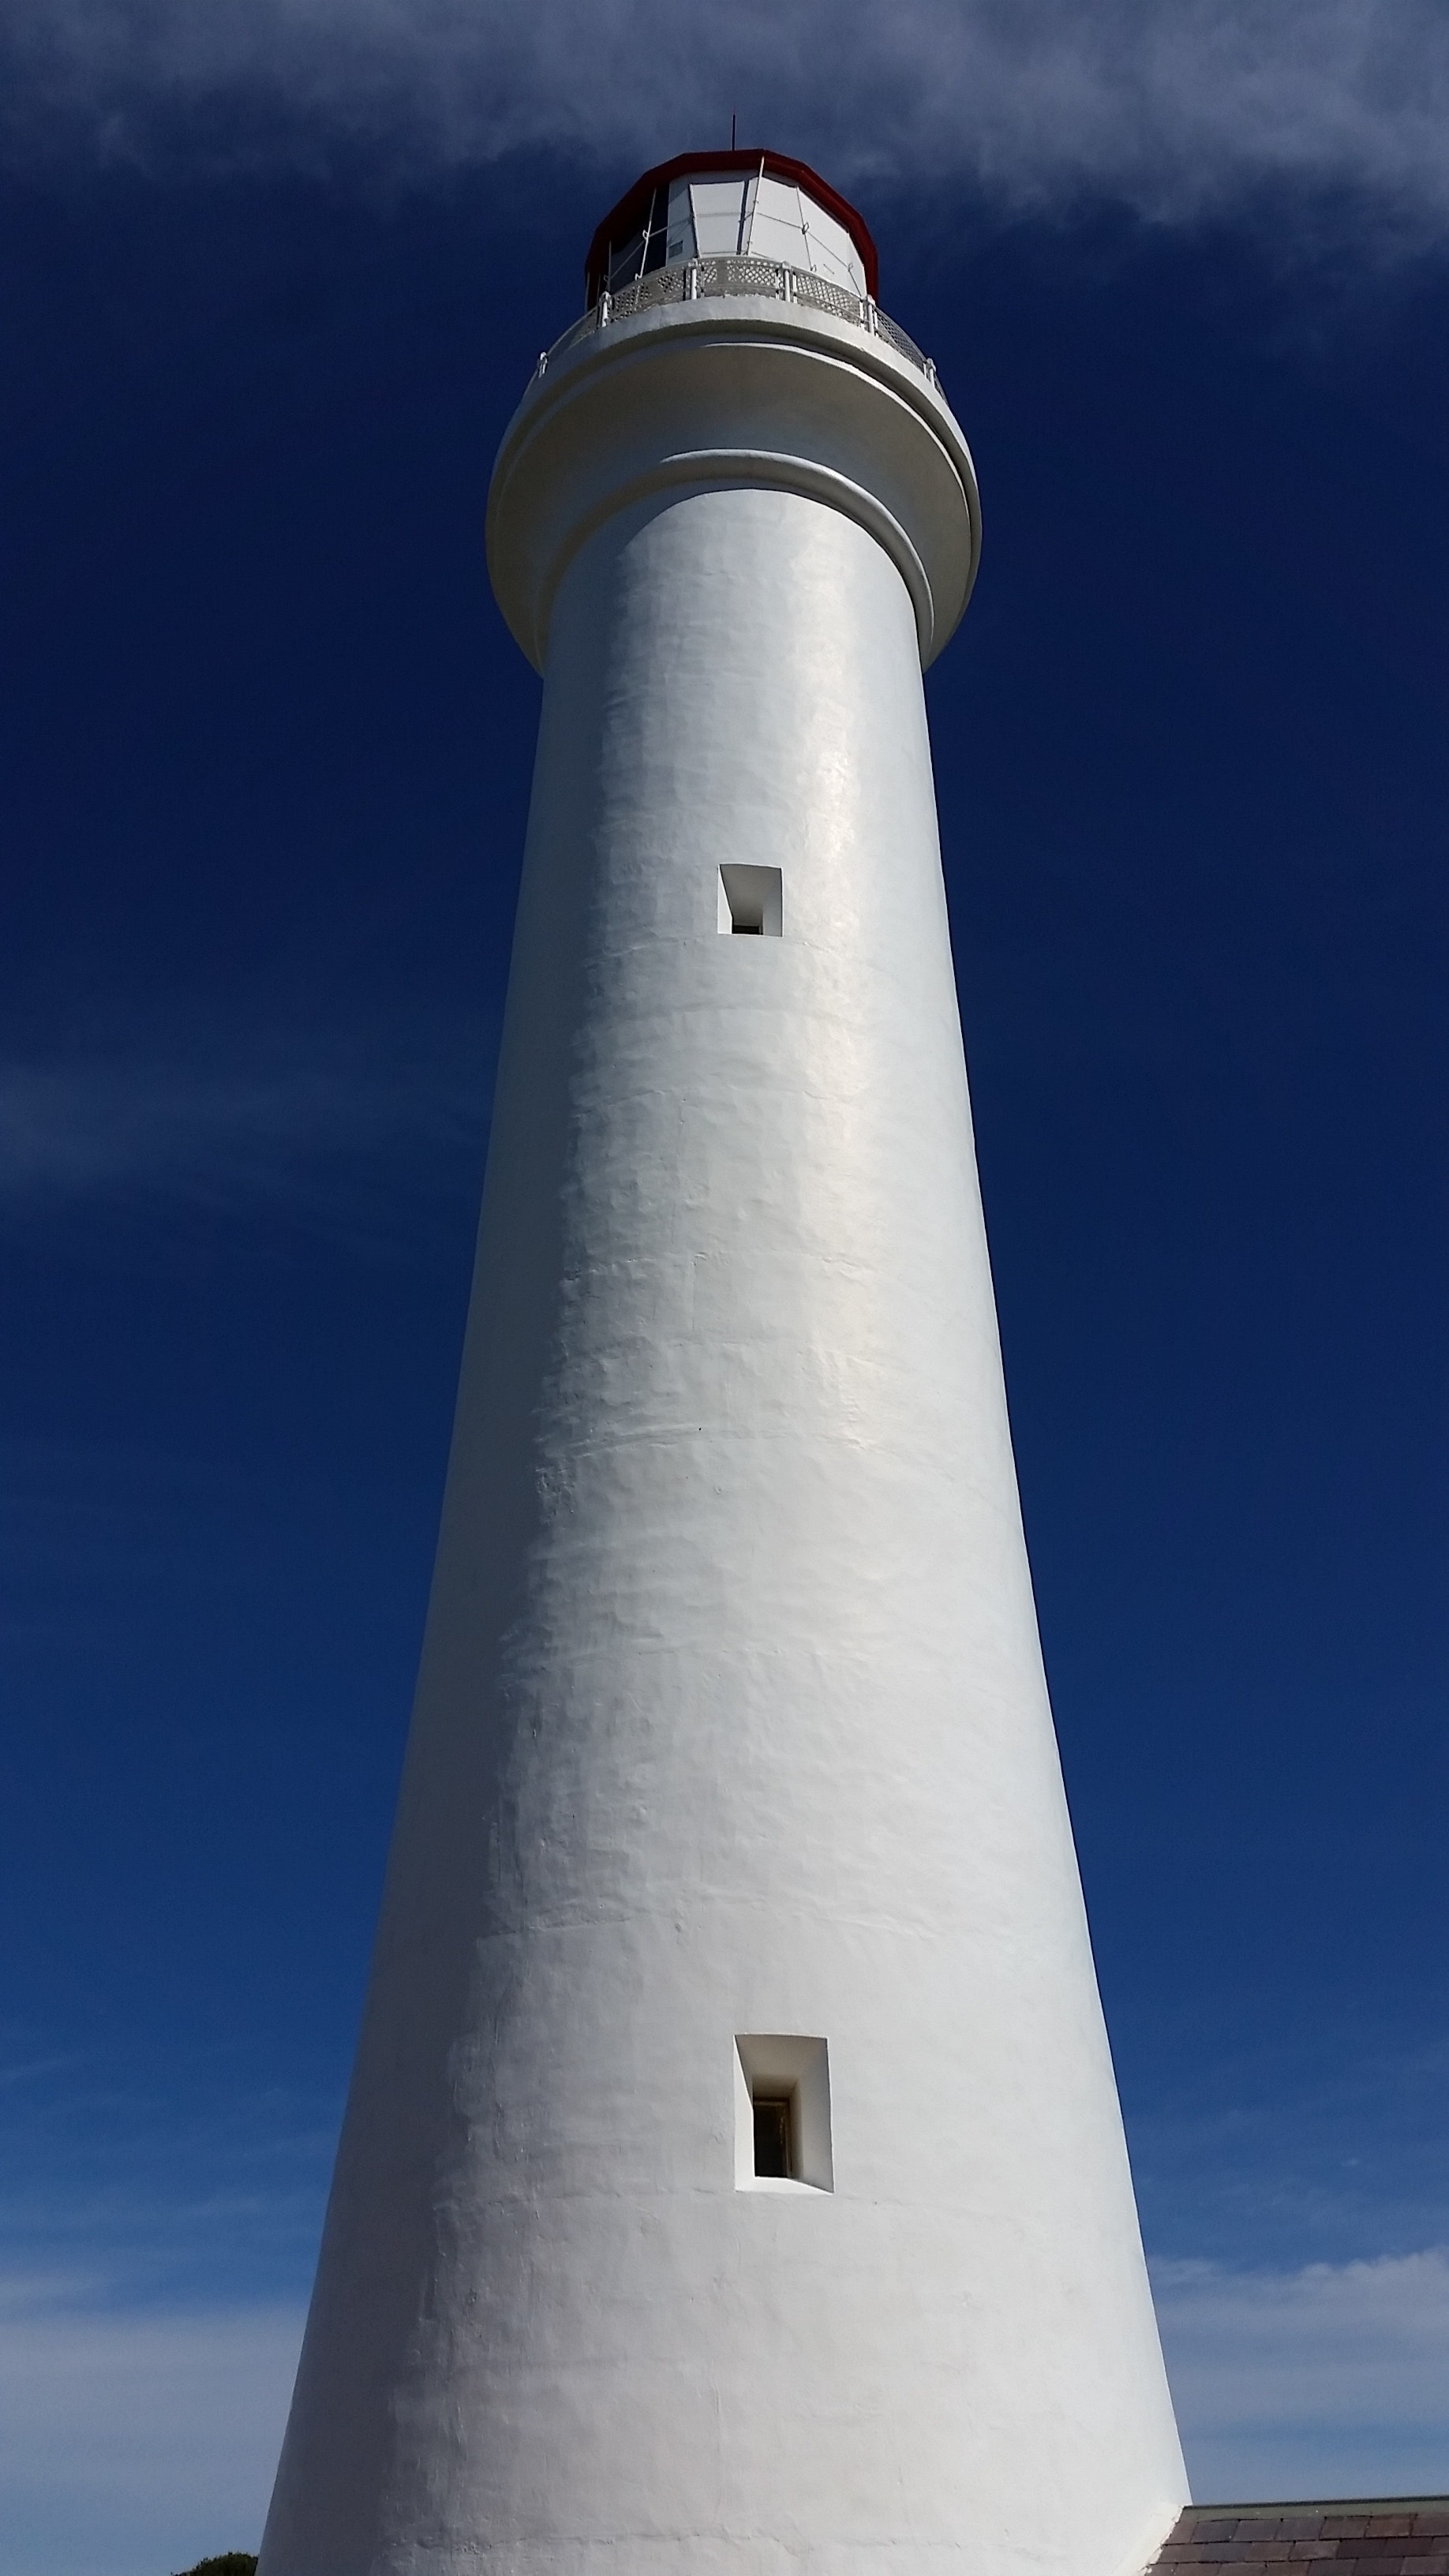 White lighthouse in low angle photography